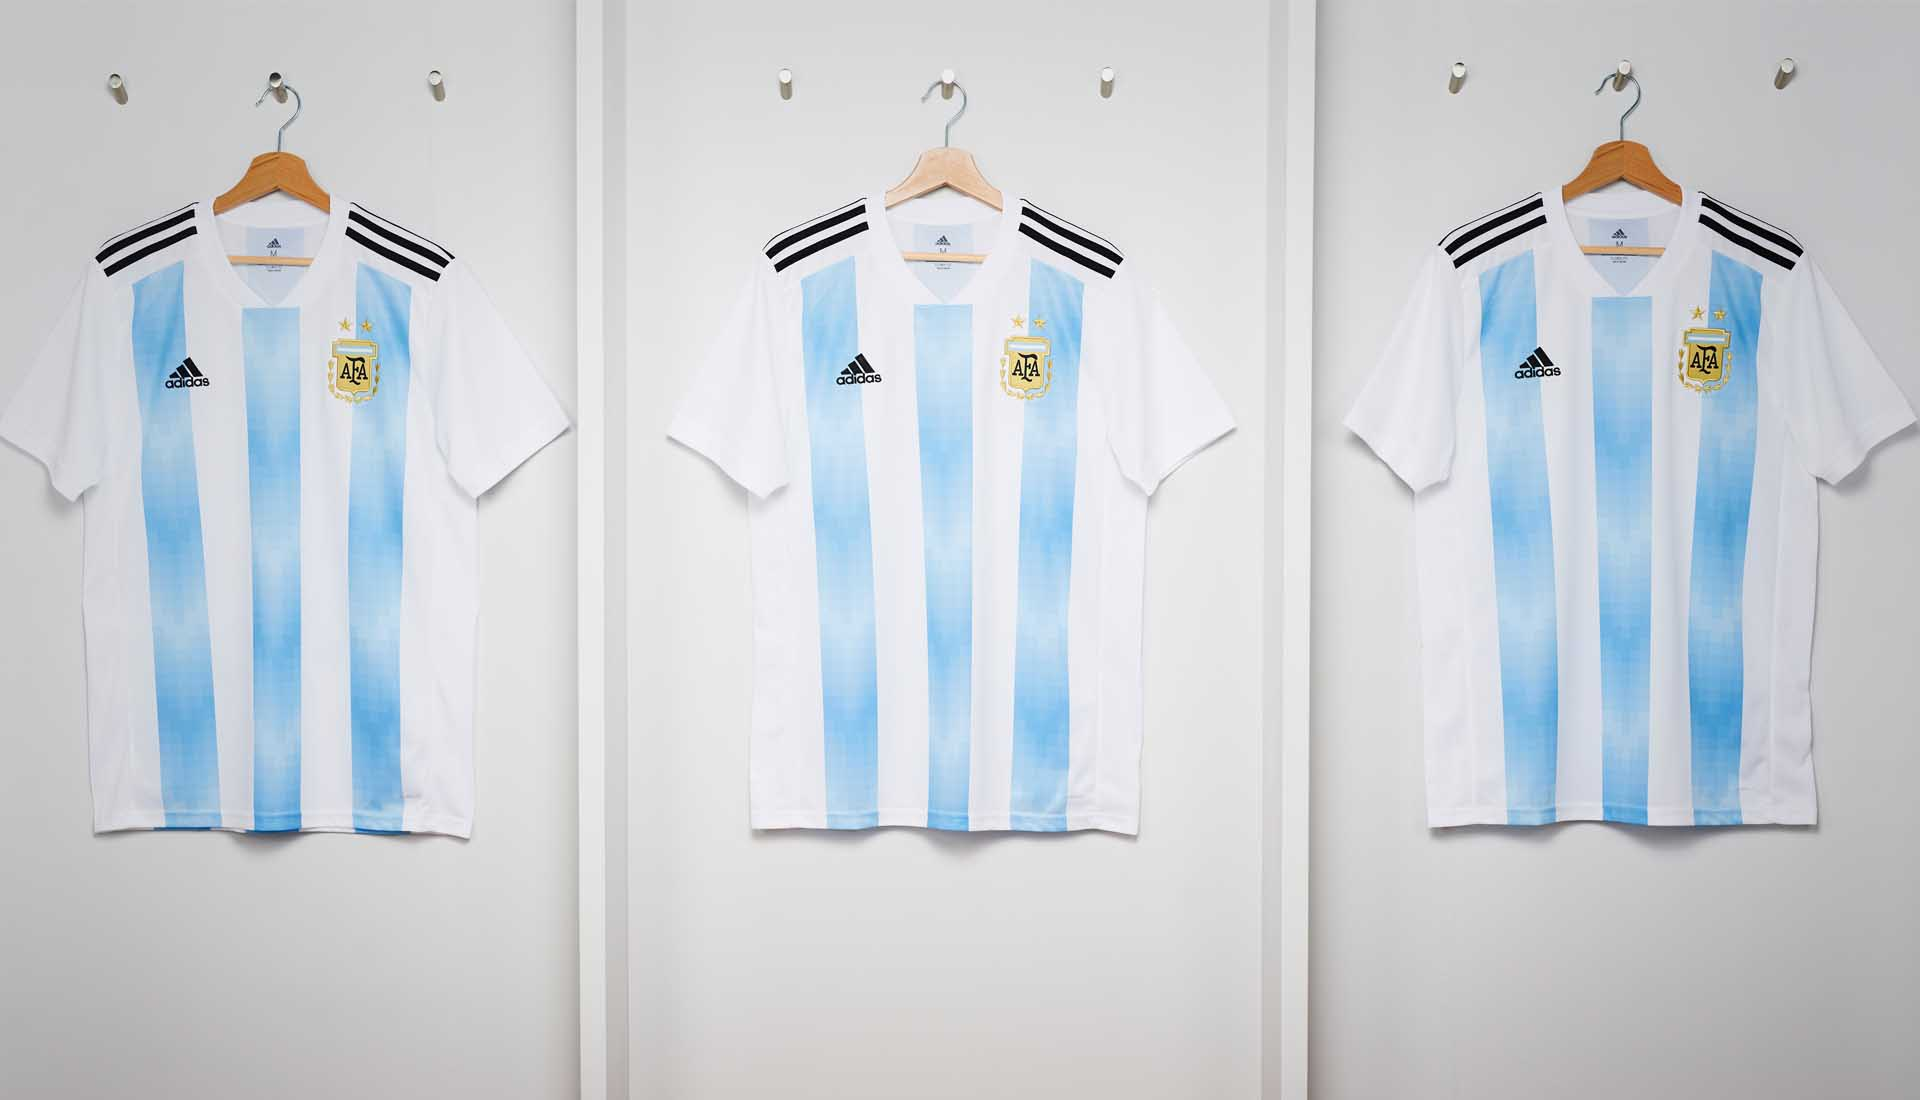 4c89e0a7c The Argentina 2018 World Cup kit pays tribute to the anniversary by subtly  incorporating laurels, a key element of the Argentinian coat of arms and  the AFA ...